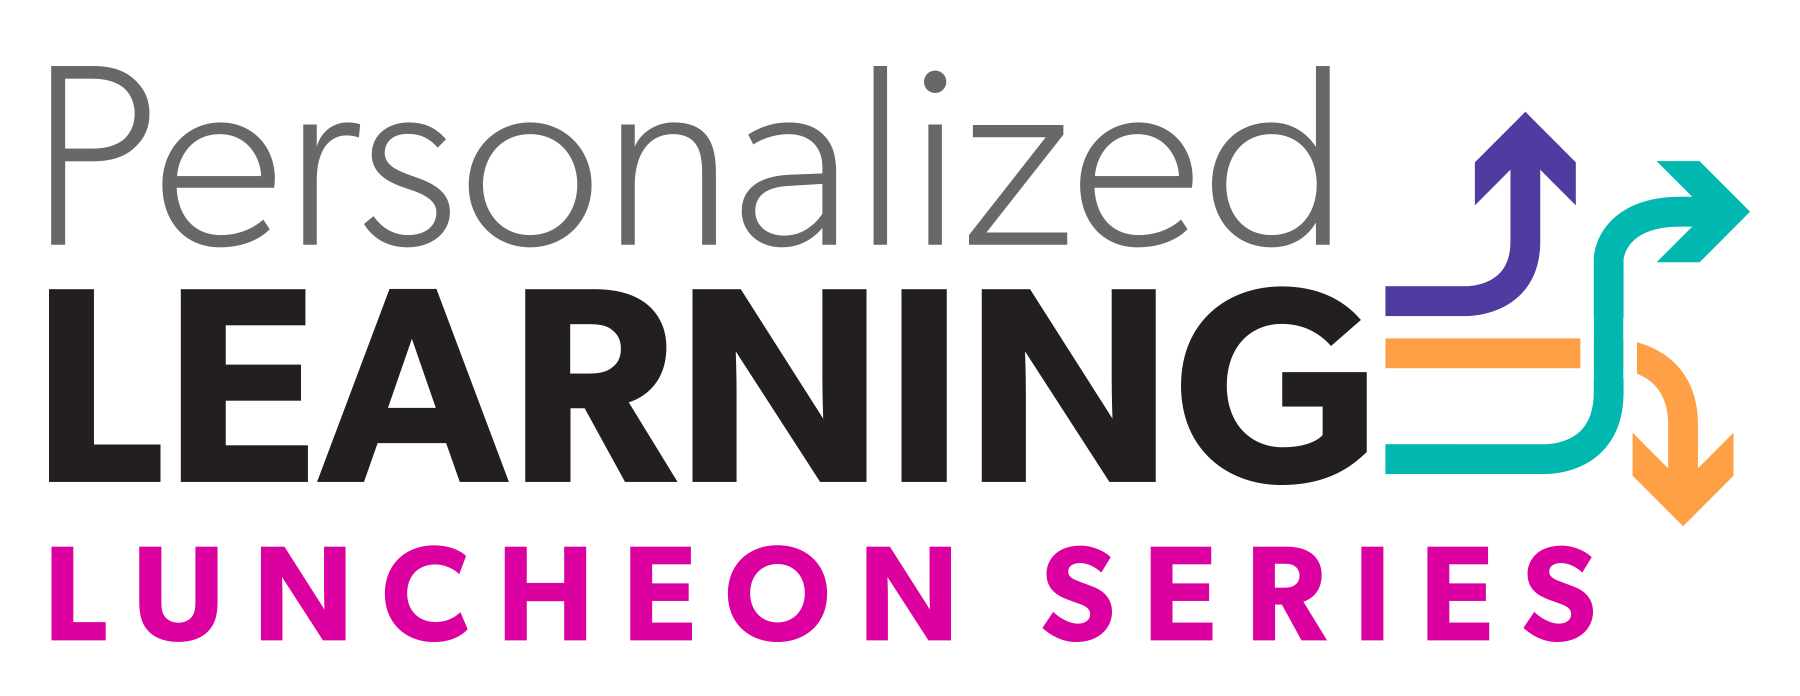 Personalized Learning Luncheon Series